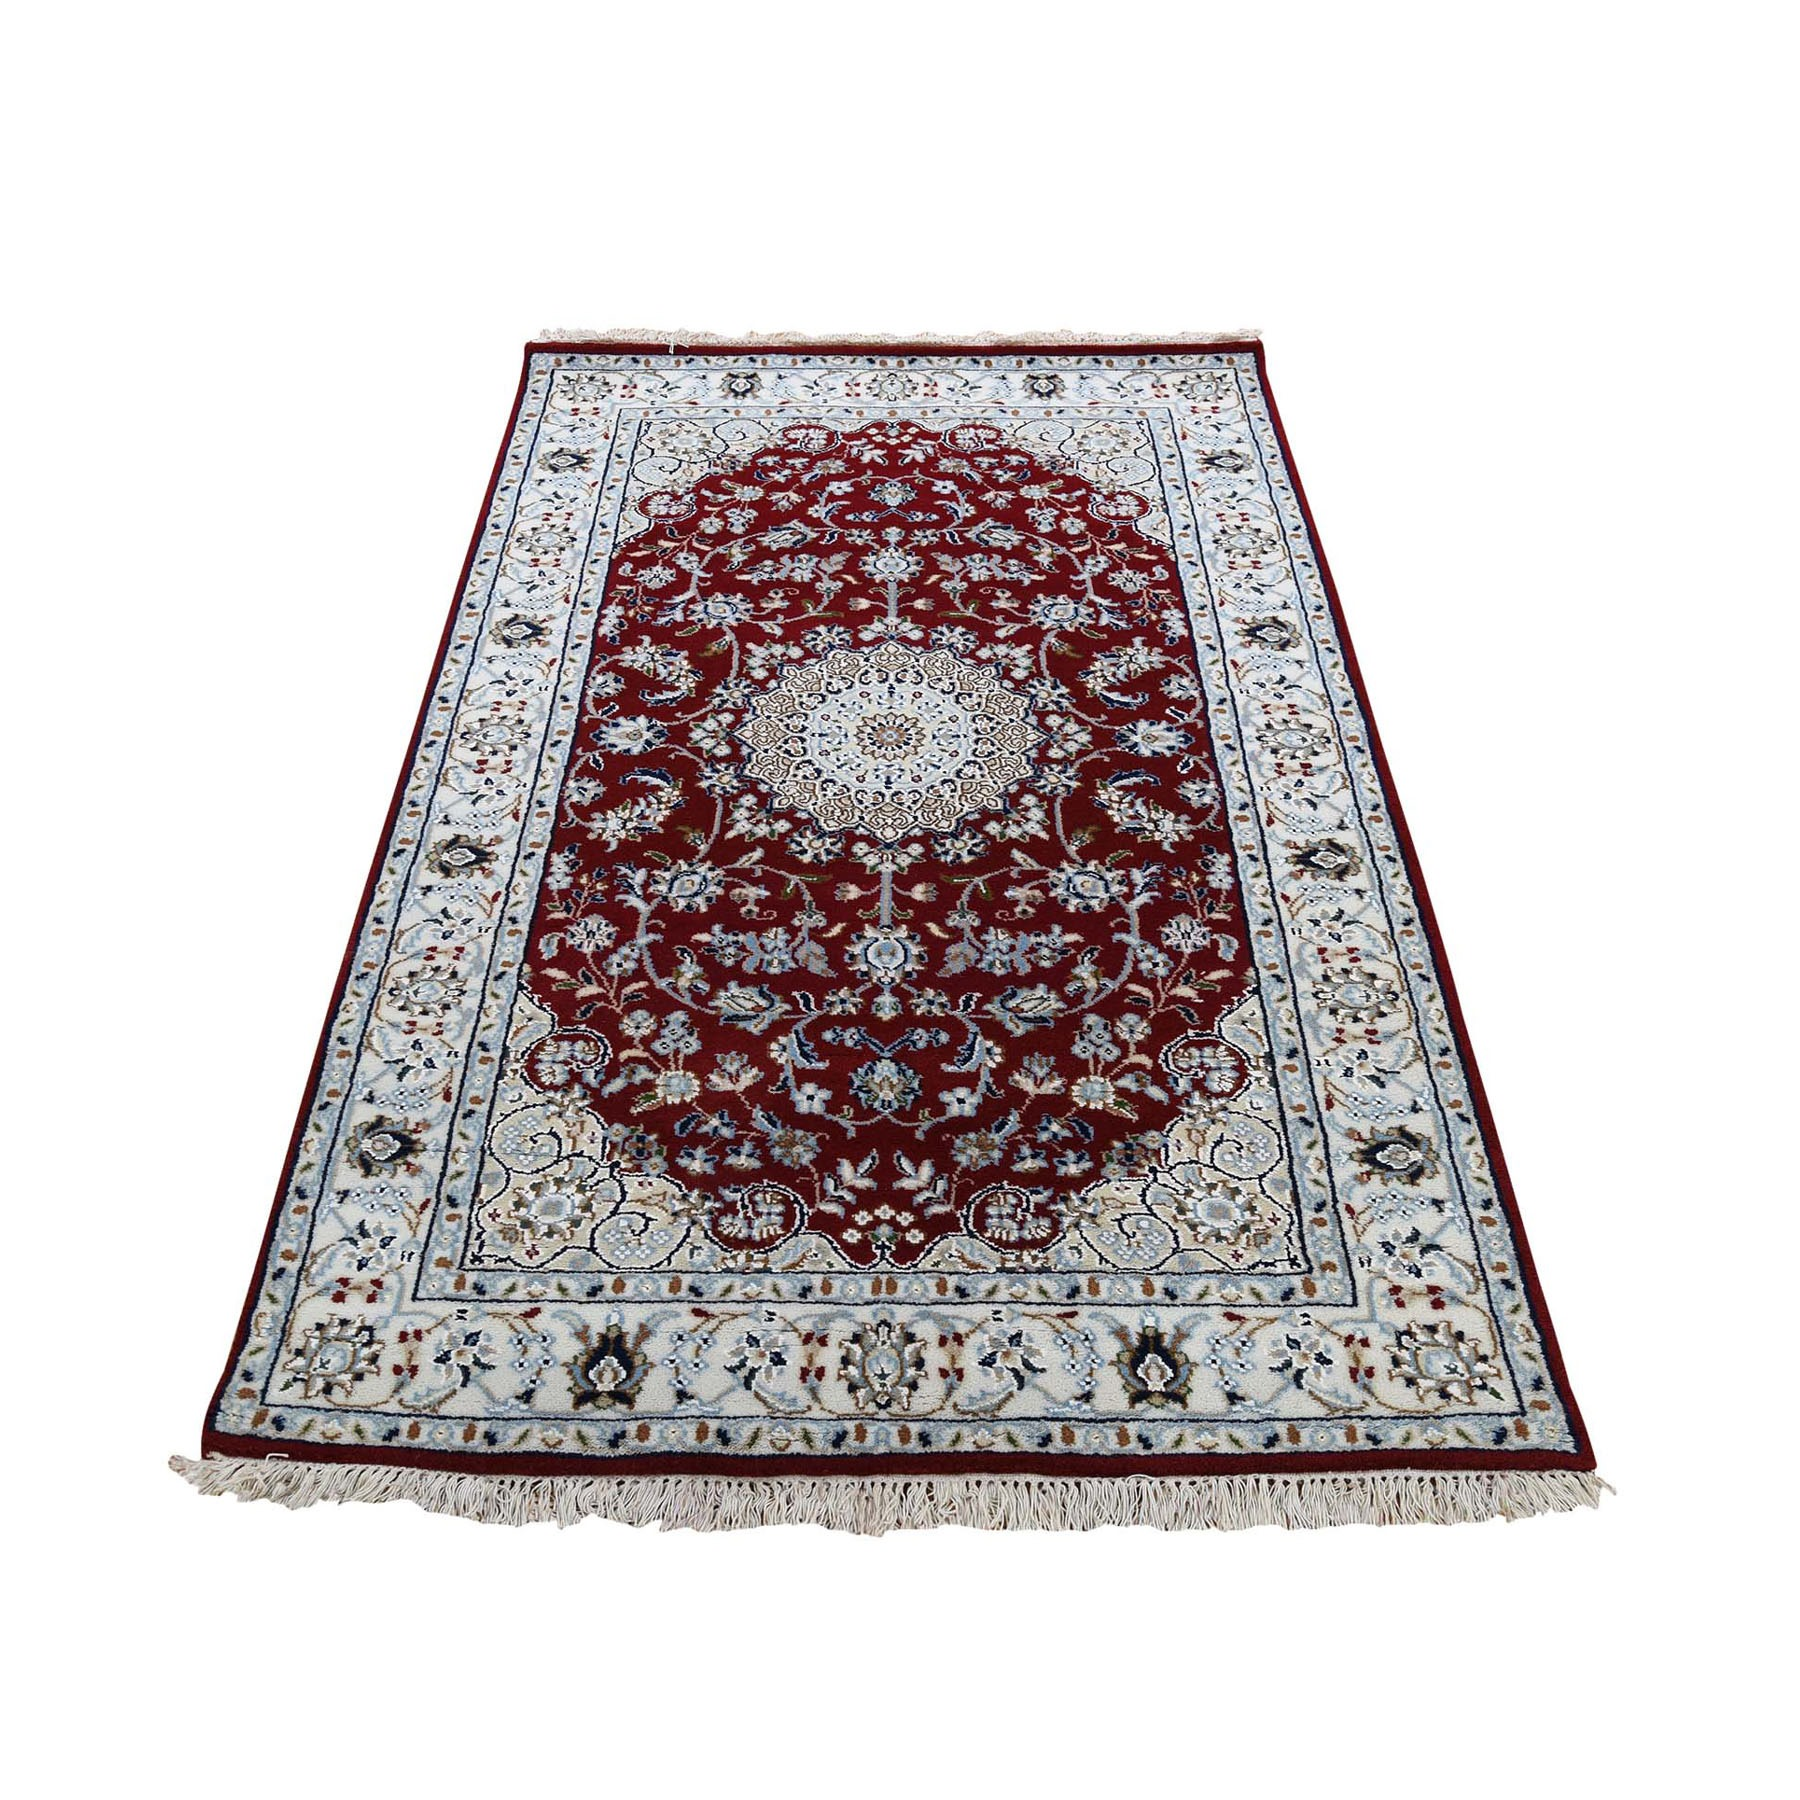 "3'x5'4"" Red Nain Wool And Silk 250 Kpsi Hand Woven Oriental Rug"